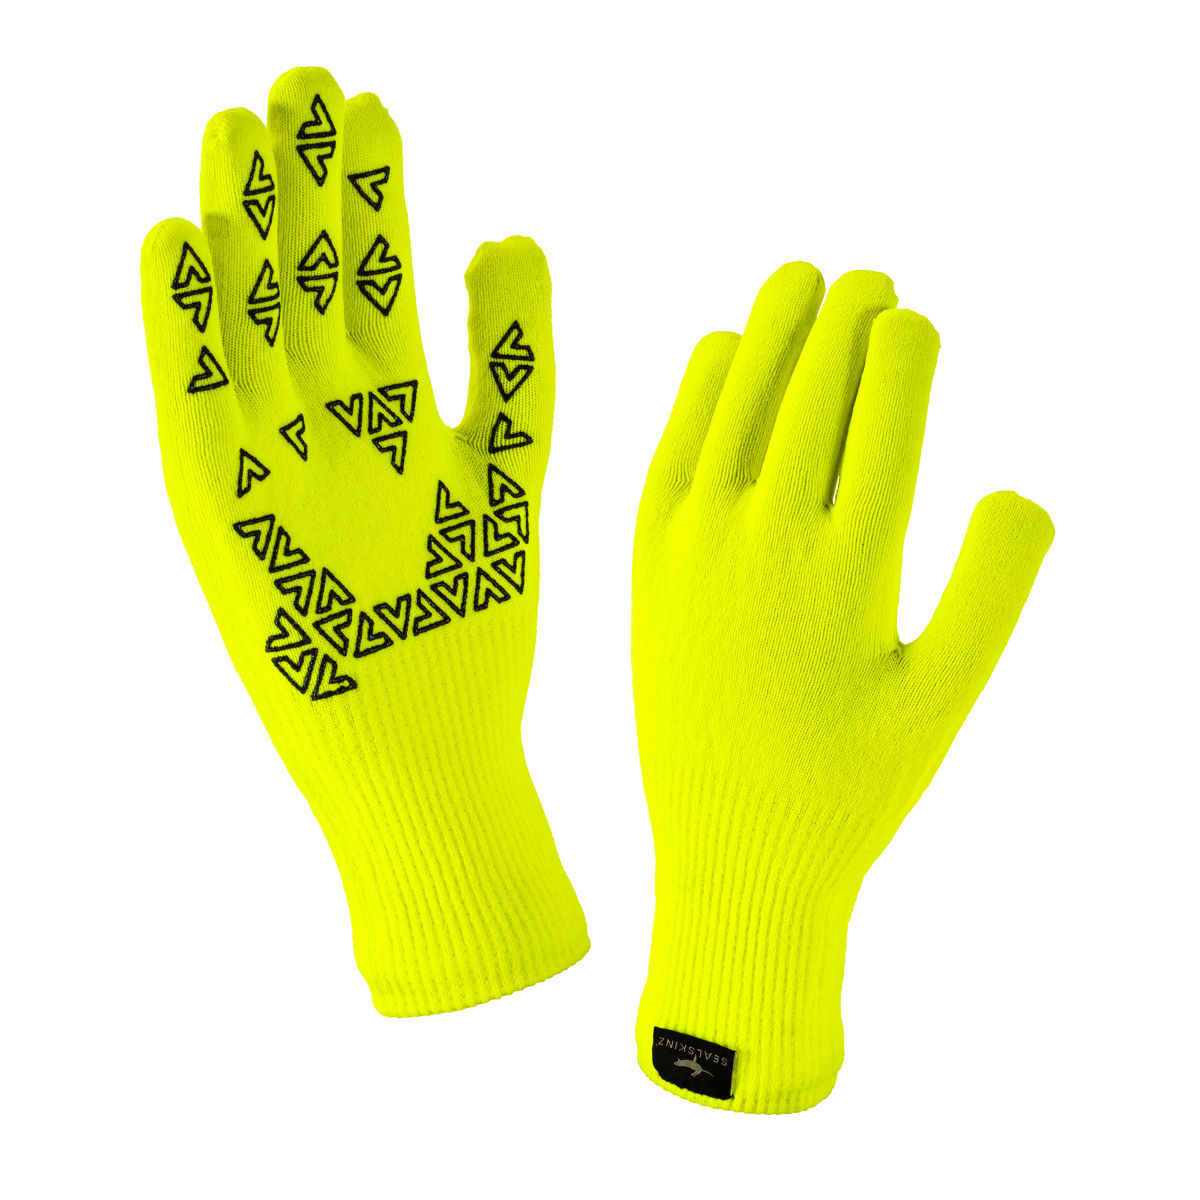 Gants SealSkinz Ultra Grip - M Yellow/Anthracite Gants